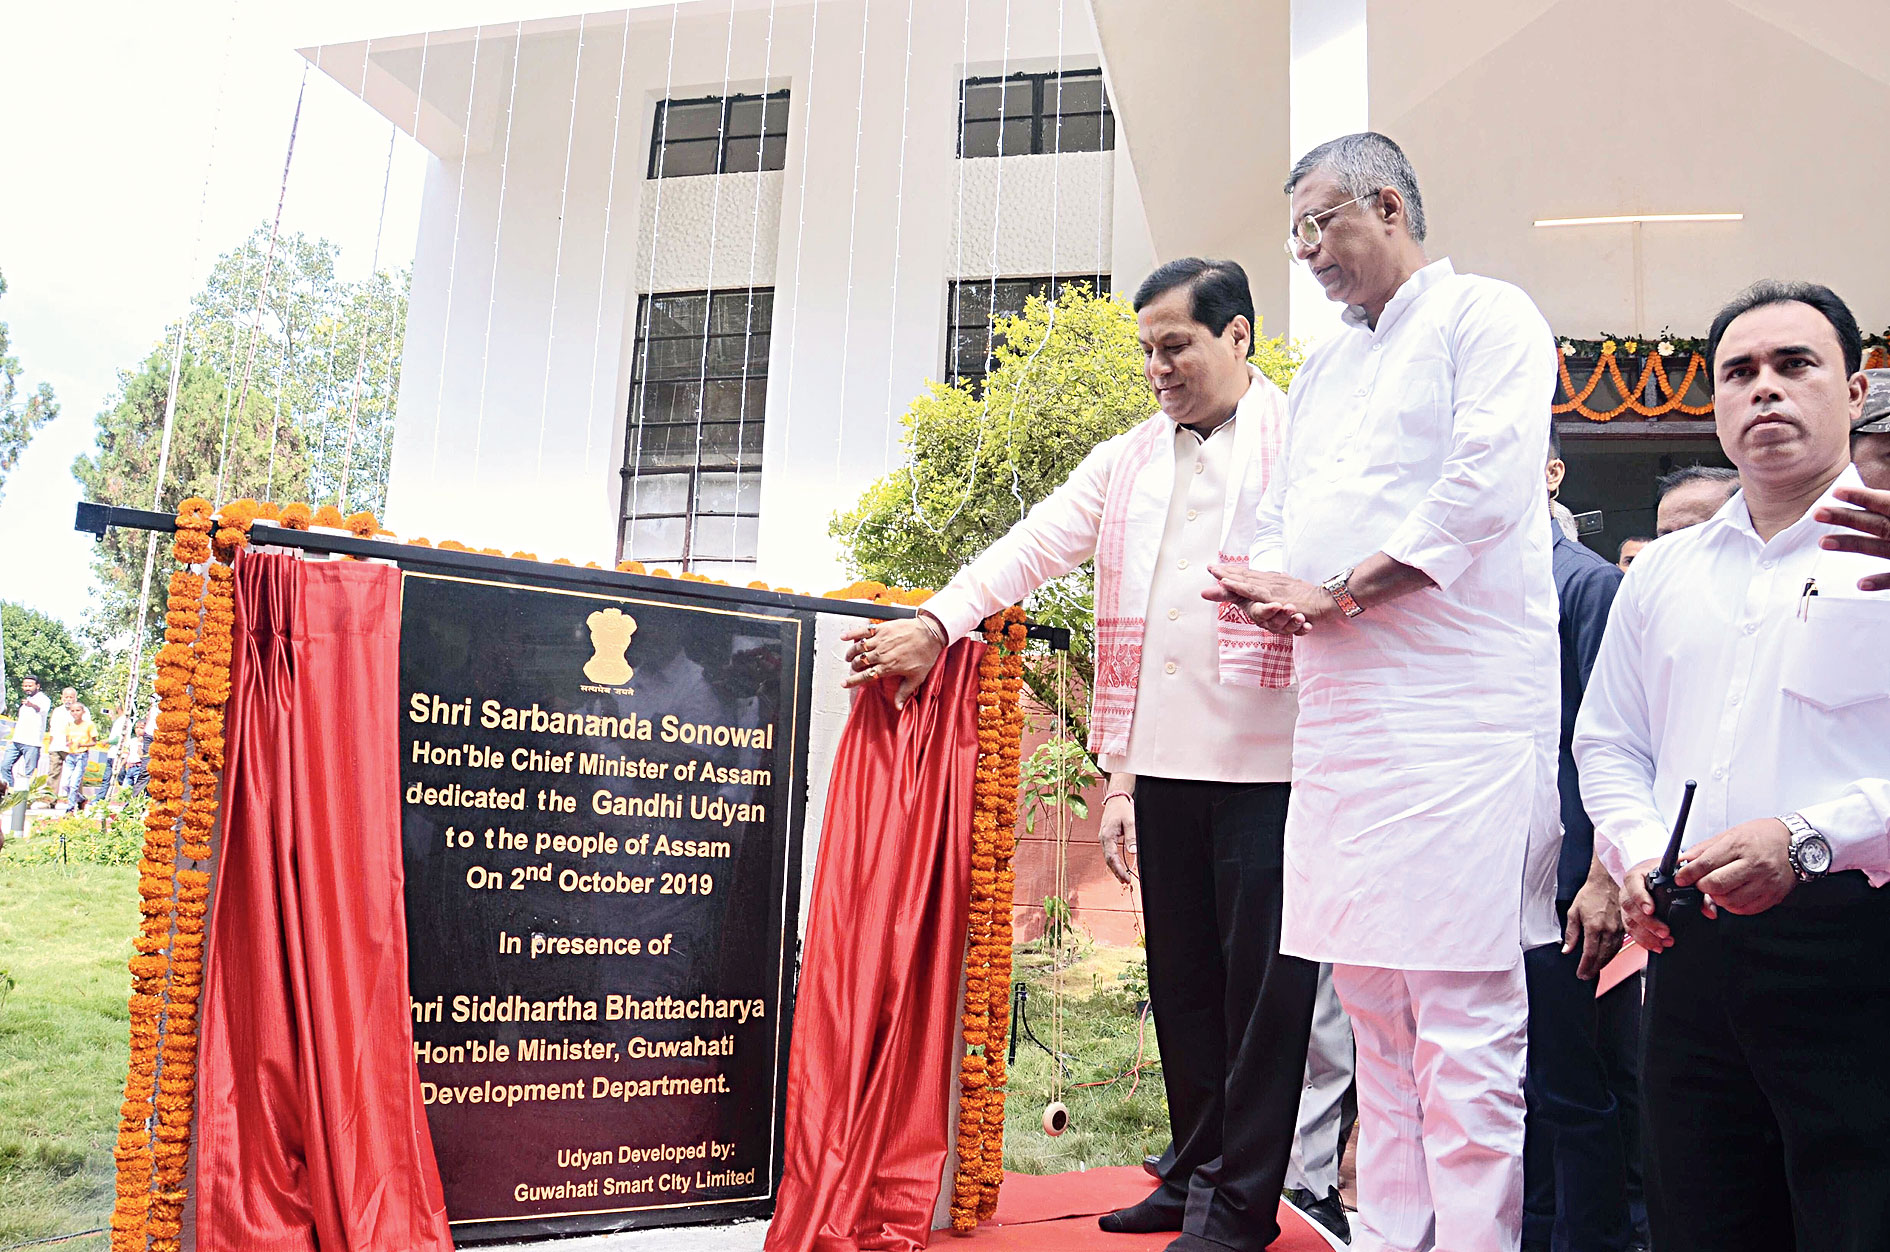 Assam chief minister Sarbananda Sonowal unveils the plaque during inauguration of the park in Guwahati